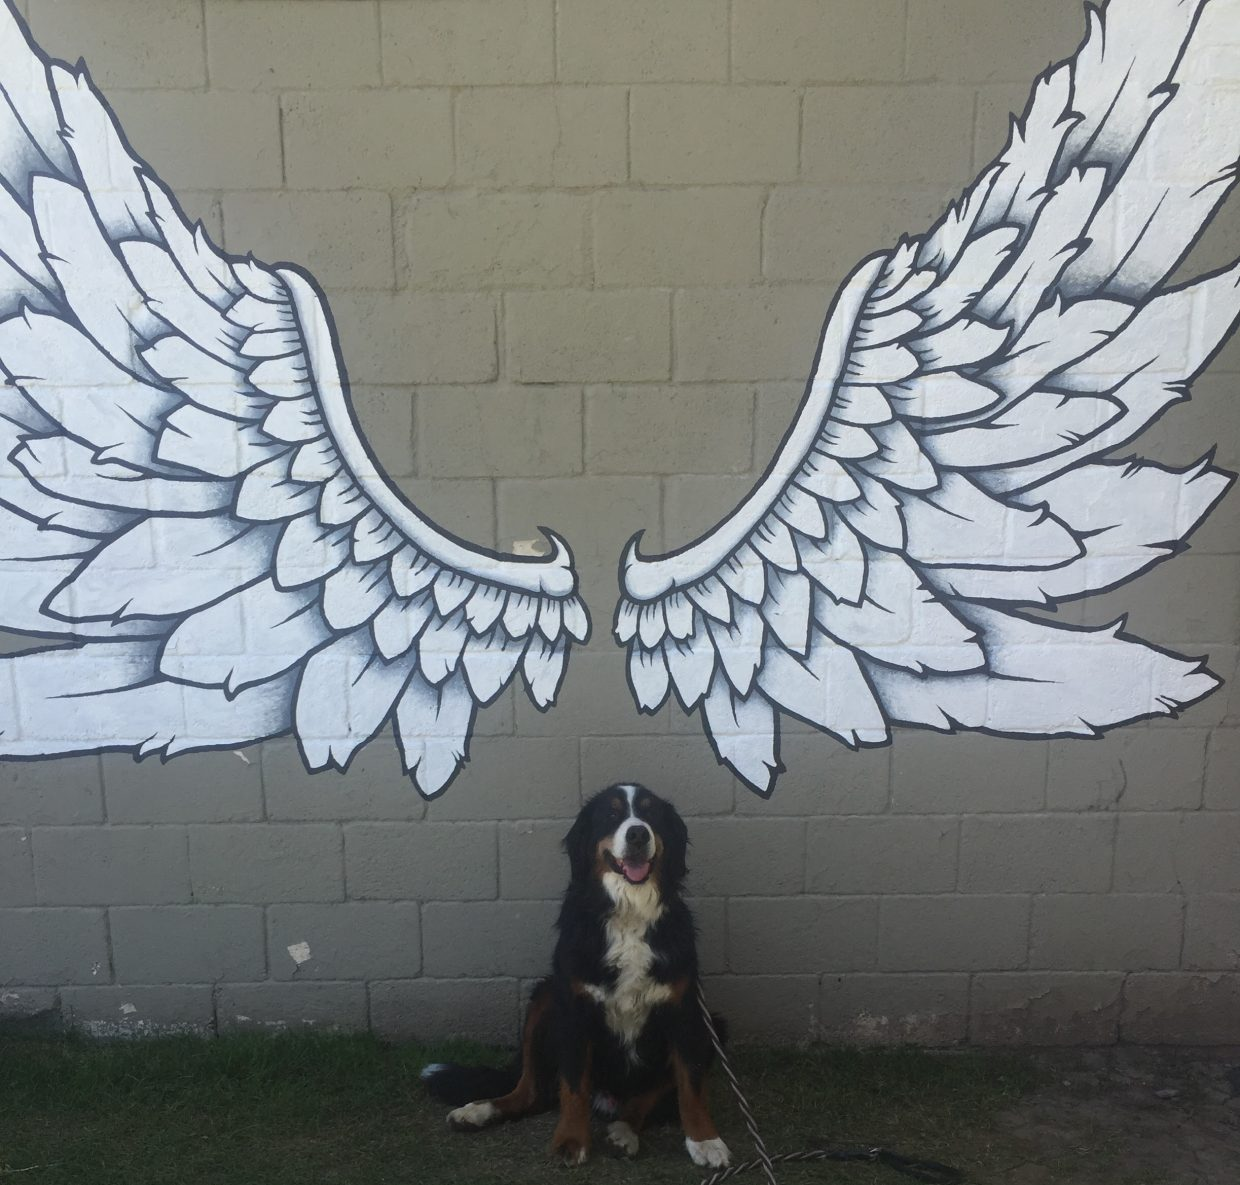 Barley with wings at Kali's Boutique. Submitted by Kelsey Riordan.